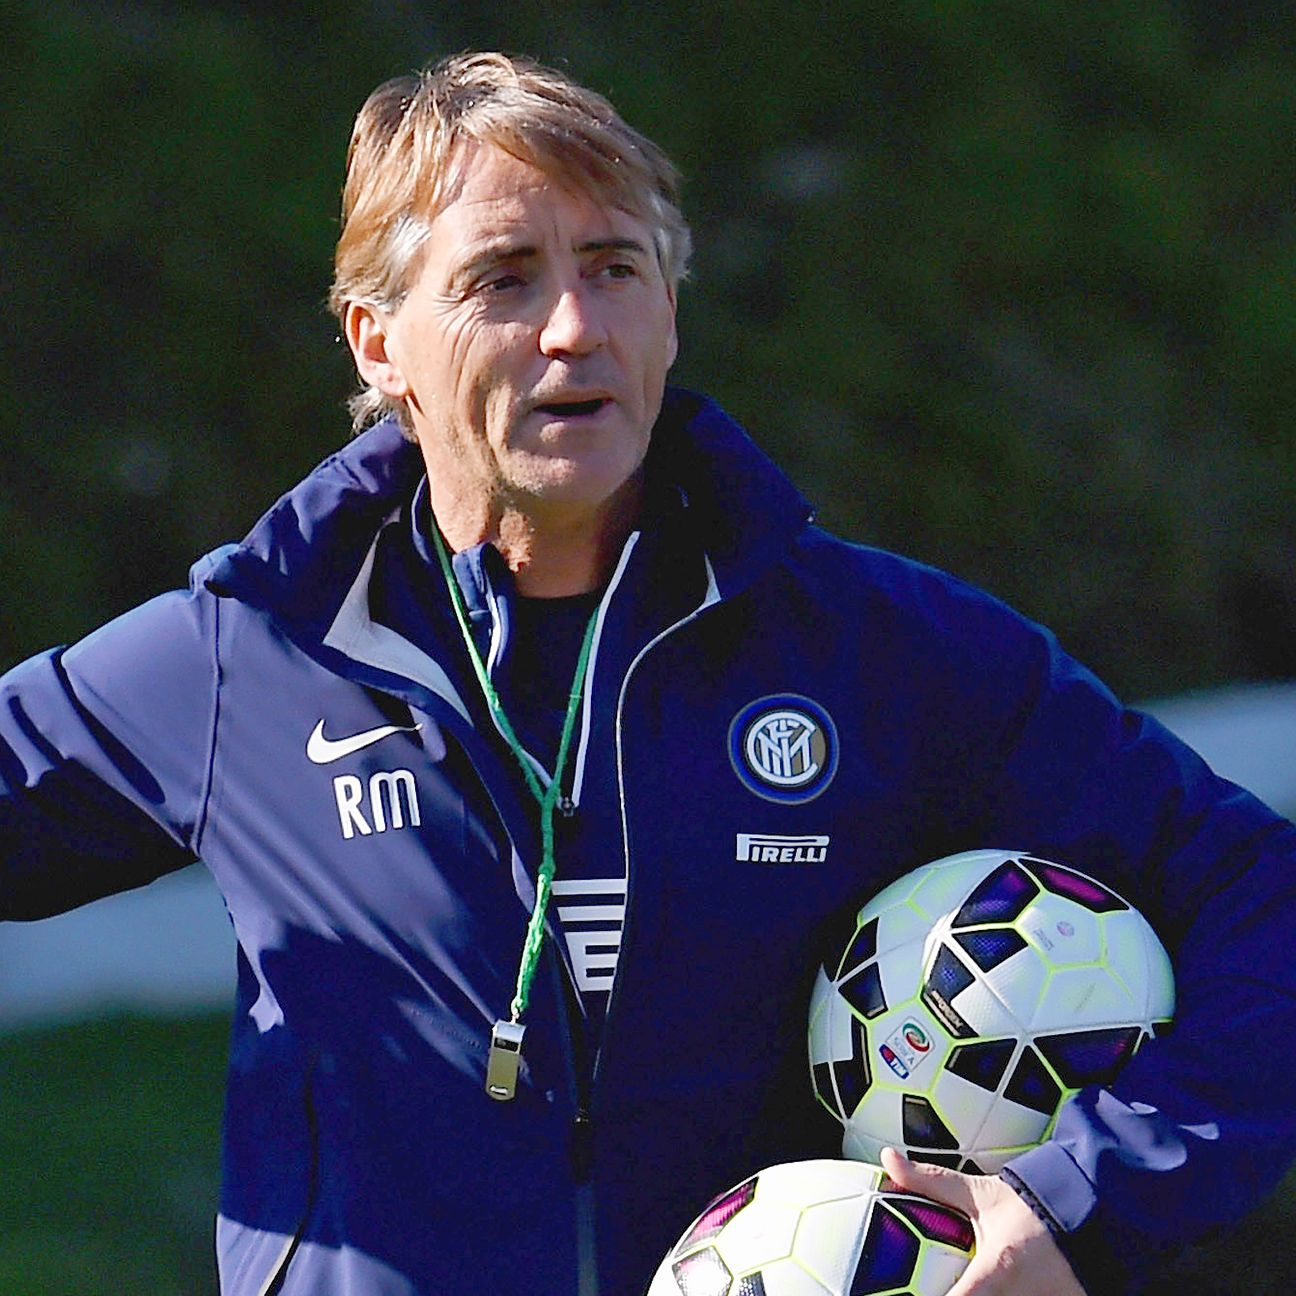 With Xherdan Shaqiri and Lukas Podolski now departed, it is imperative for Inter boss Roberto Mancini to bring in a winger before the transfer window closes.